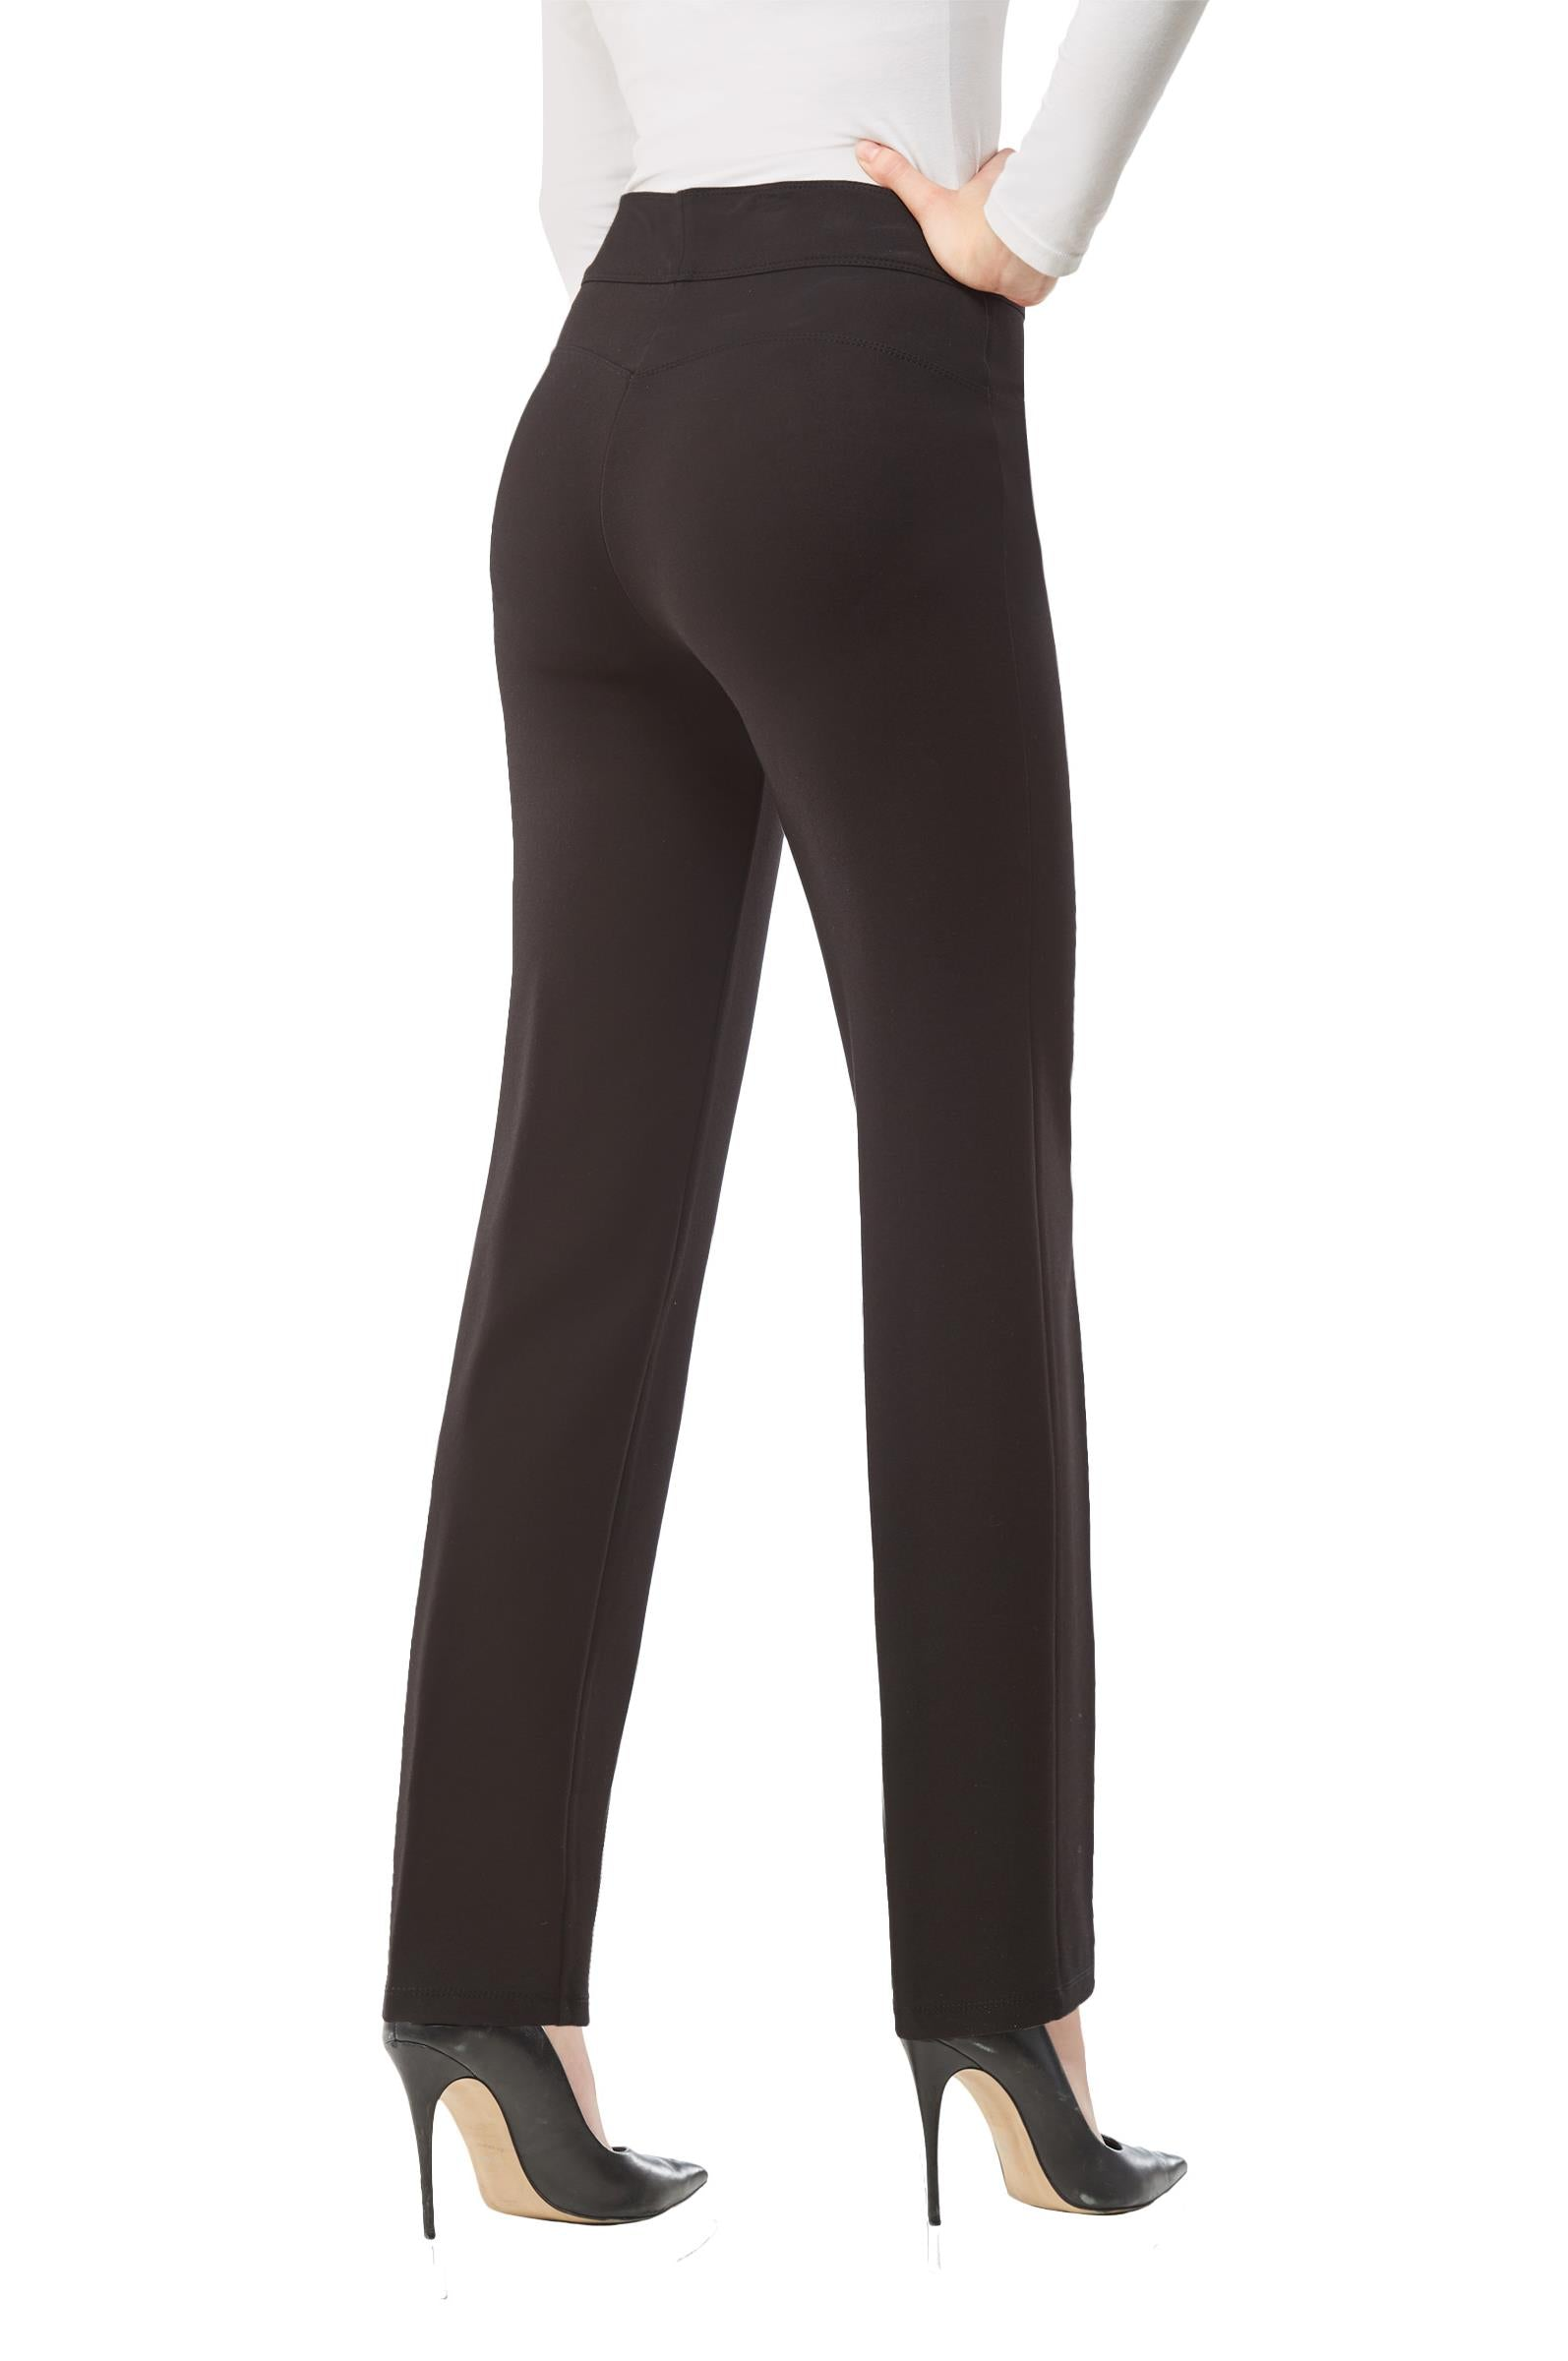 Back view woman wearing black Nygard Slims straight leg luxe ponte pants